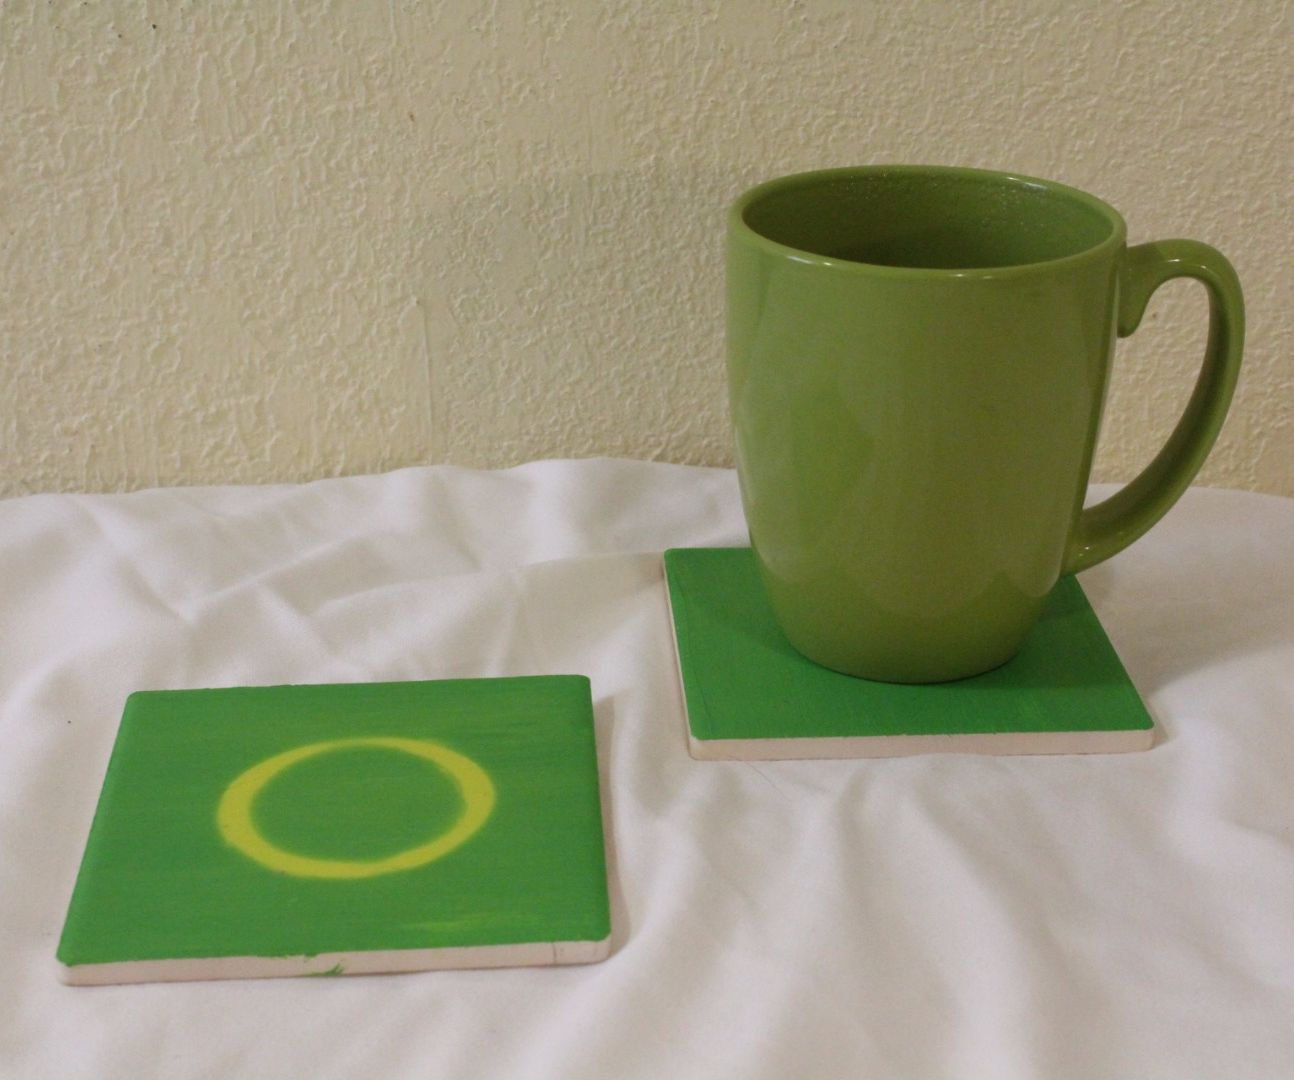 Thermocolor (Color Change) Coasters